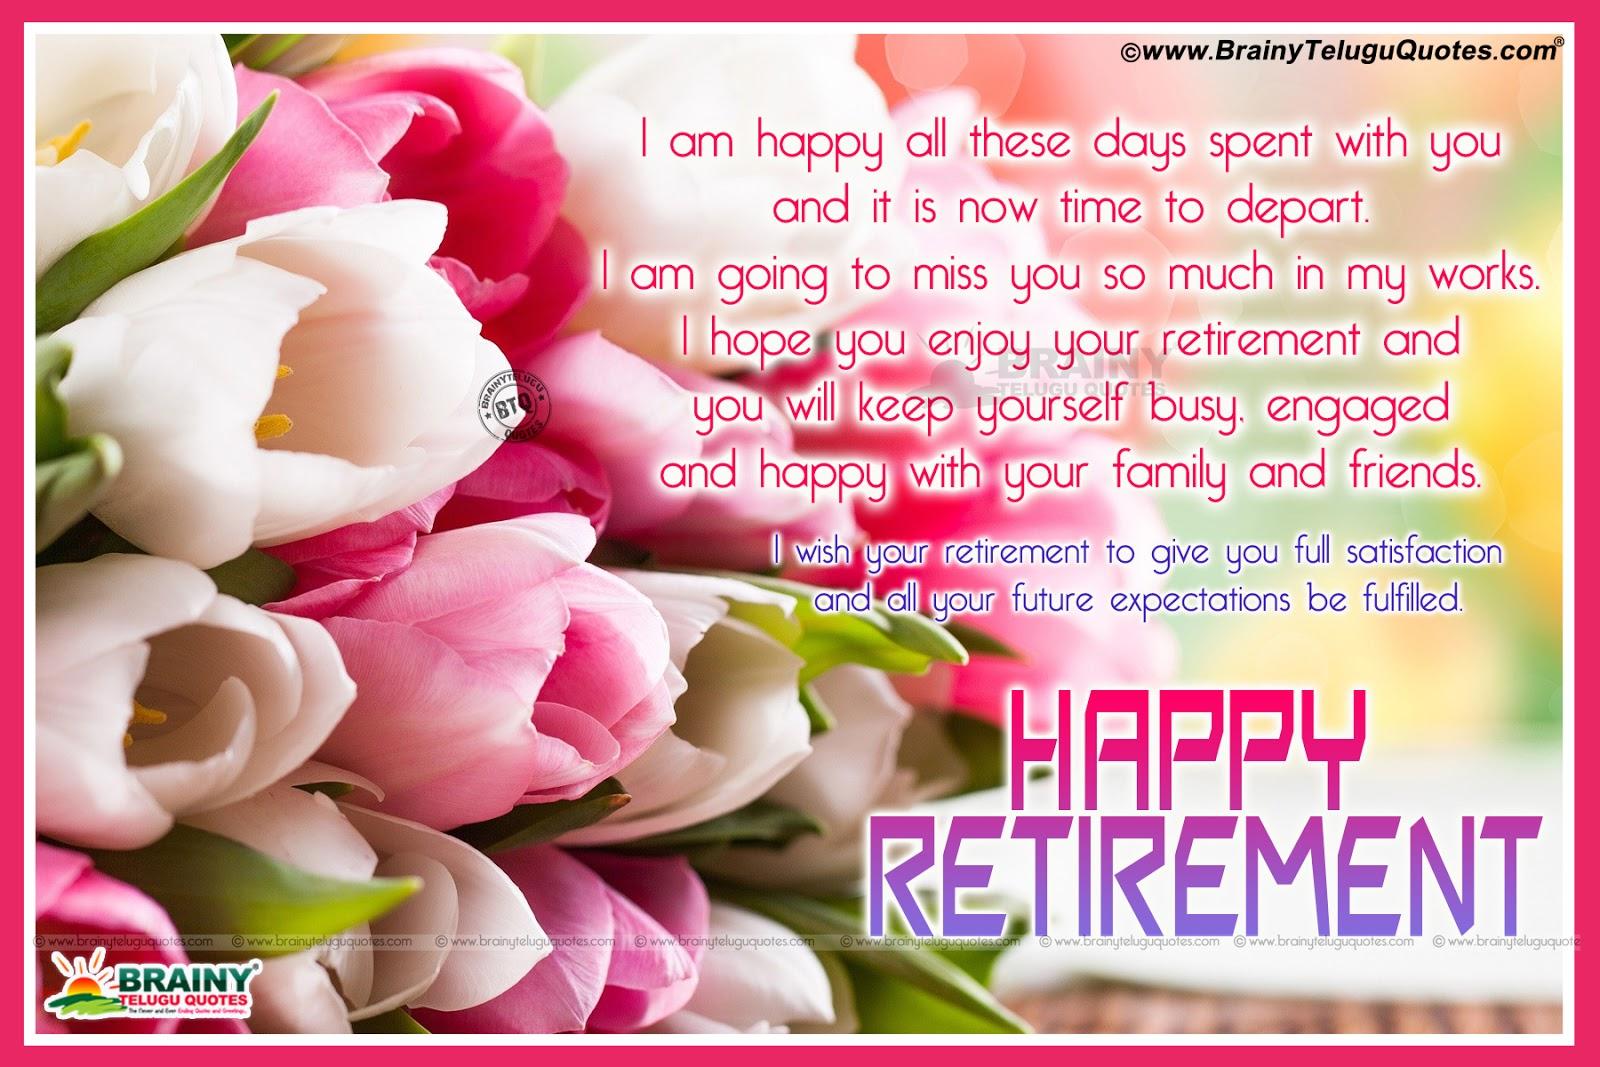 Happy Retirement Day Quotes Greetings Wishes With Blooming